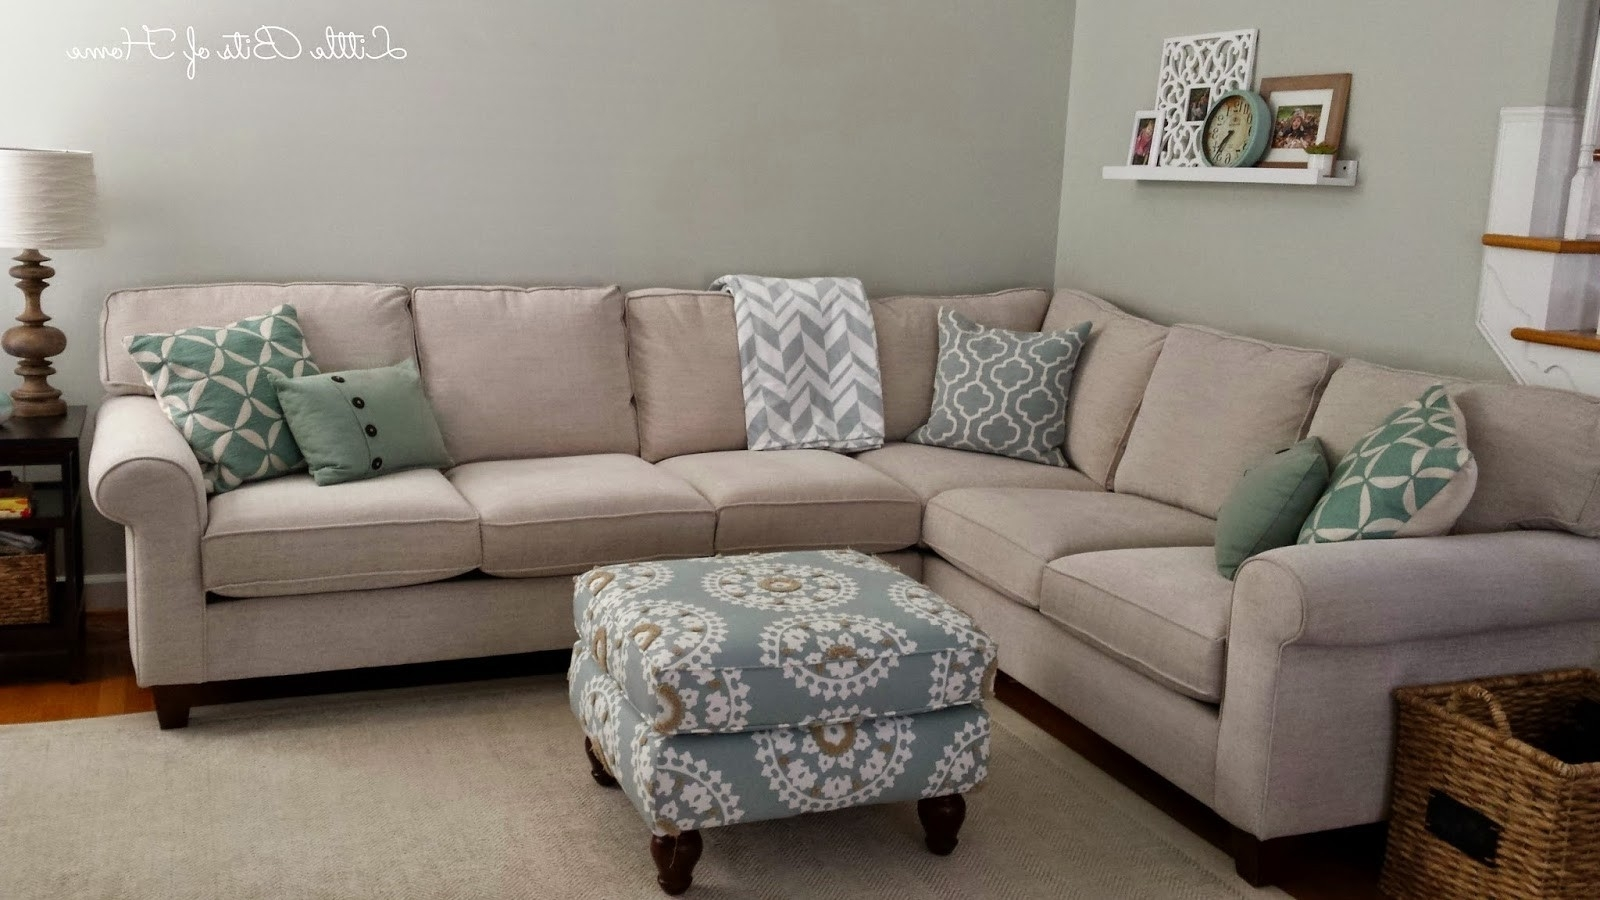 Lovely Haverty Sectional Sofa – Buildsimplehome For Well Liked Sectional Sofas At Havertys (View 6 of 15)